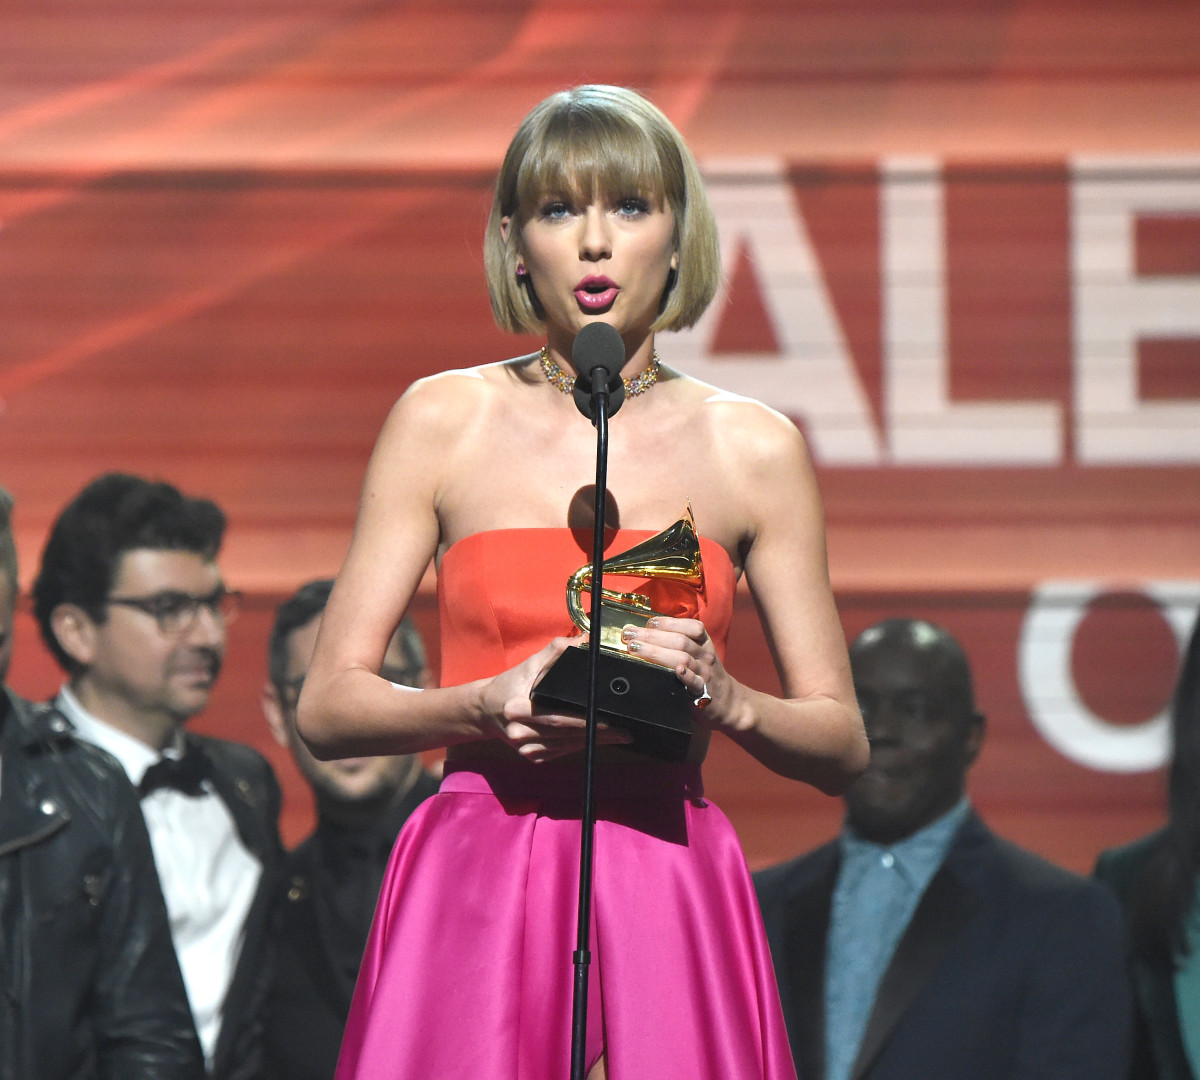 Taylor Swift accepts award onstage during The 58th GRAMMY Awards at Staples Center on February 15, 2016 in Los Angeles, California.